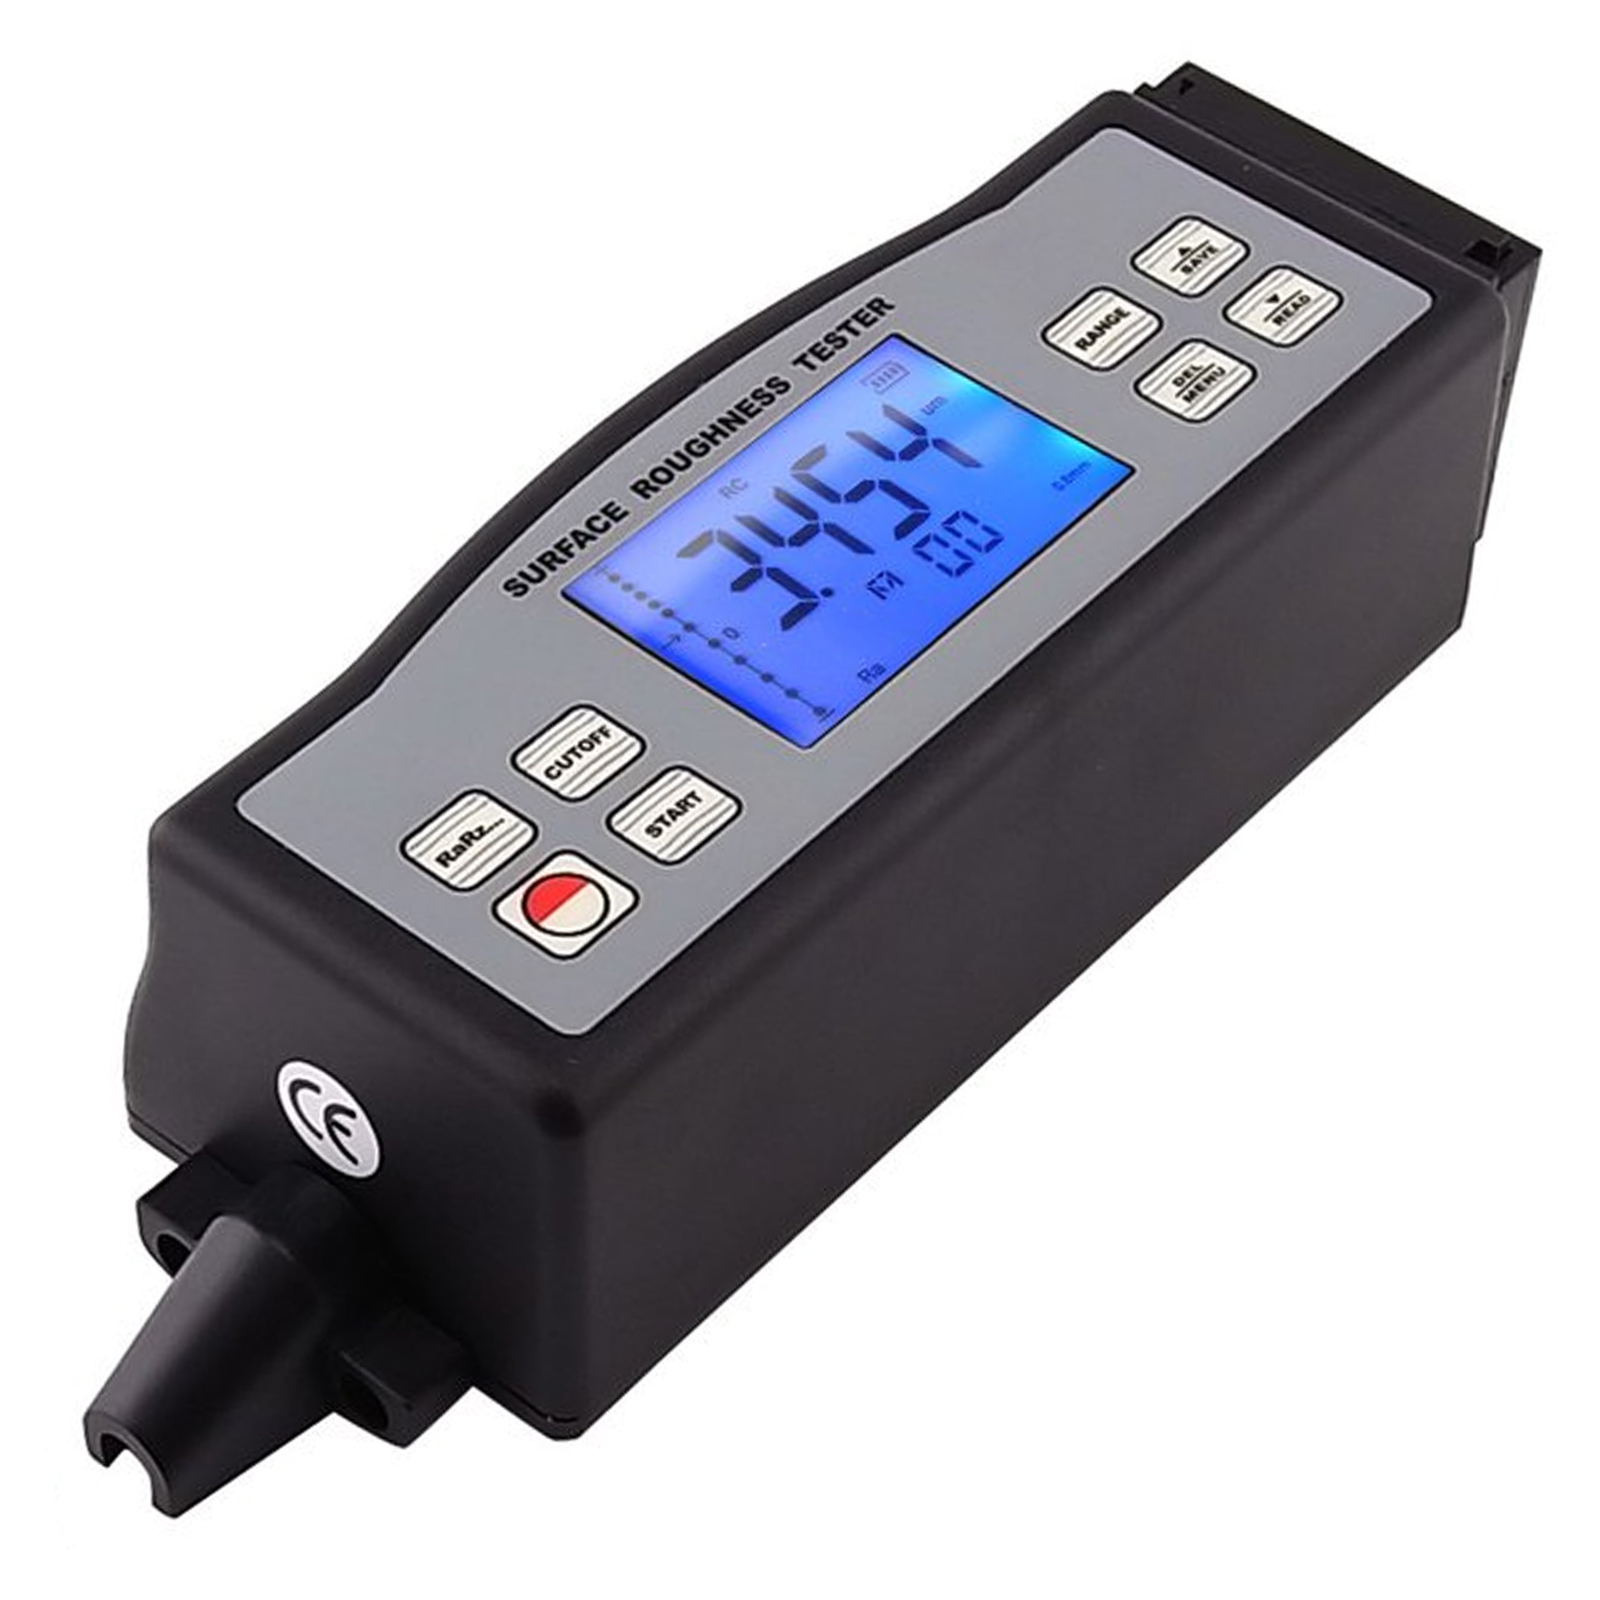 4 Parameters Digital Surface Roughness Tester (Ra, Rz, Rq, Rt) With Built-in Diamond Pin Probe